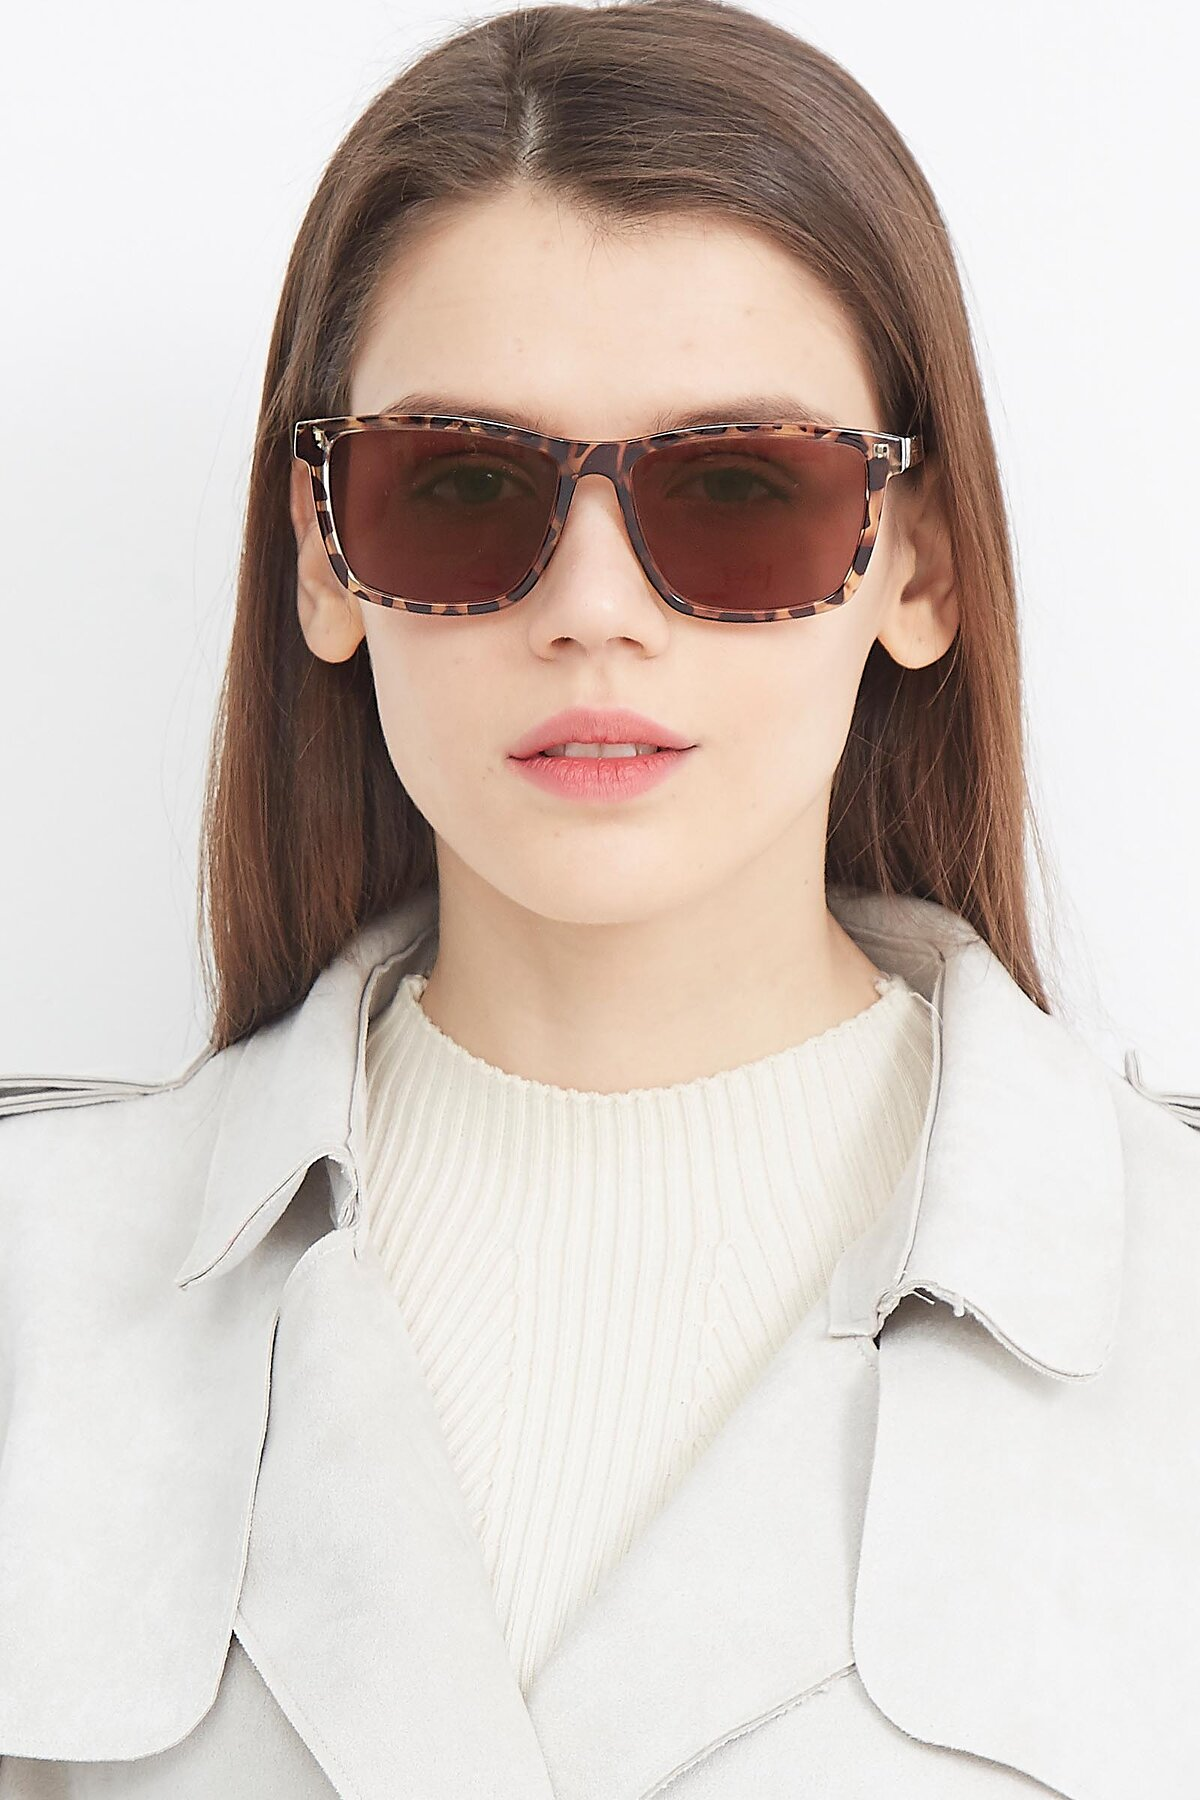 Women's lifestyle photography (portrait-1) of Sheldon in Tortoise with Brown Tinted Lenses